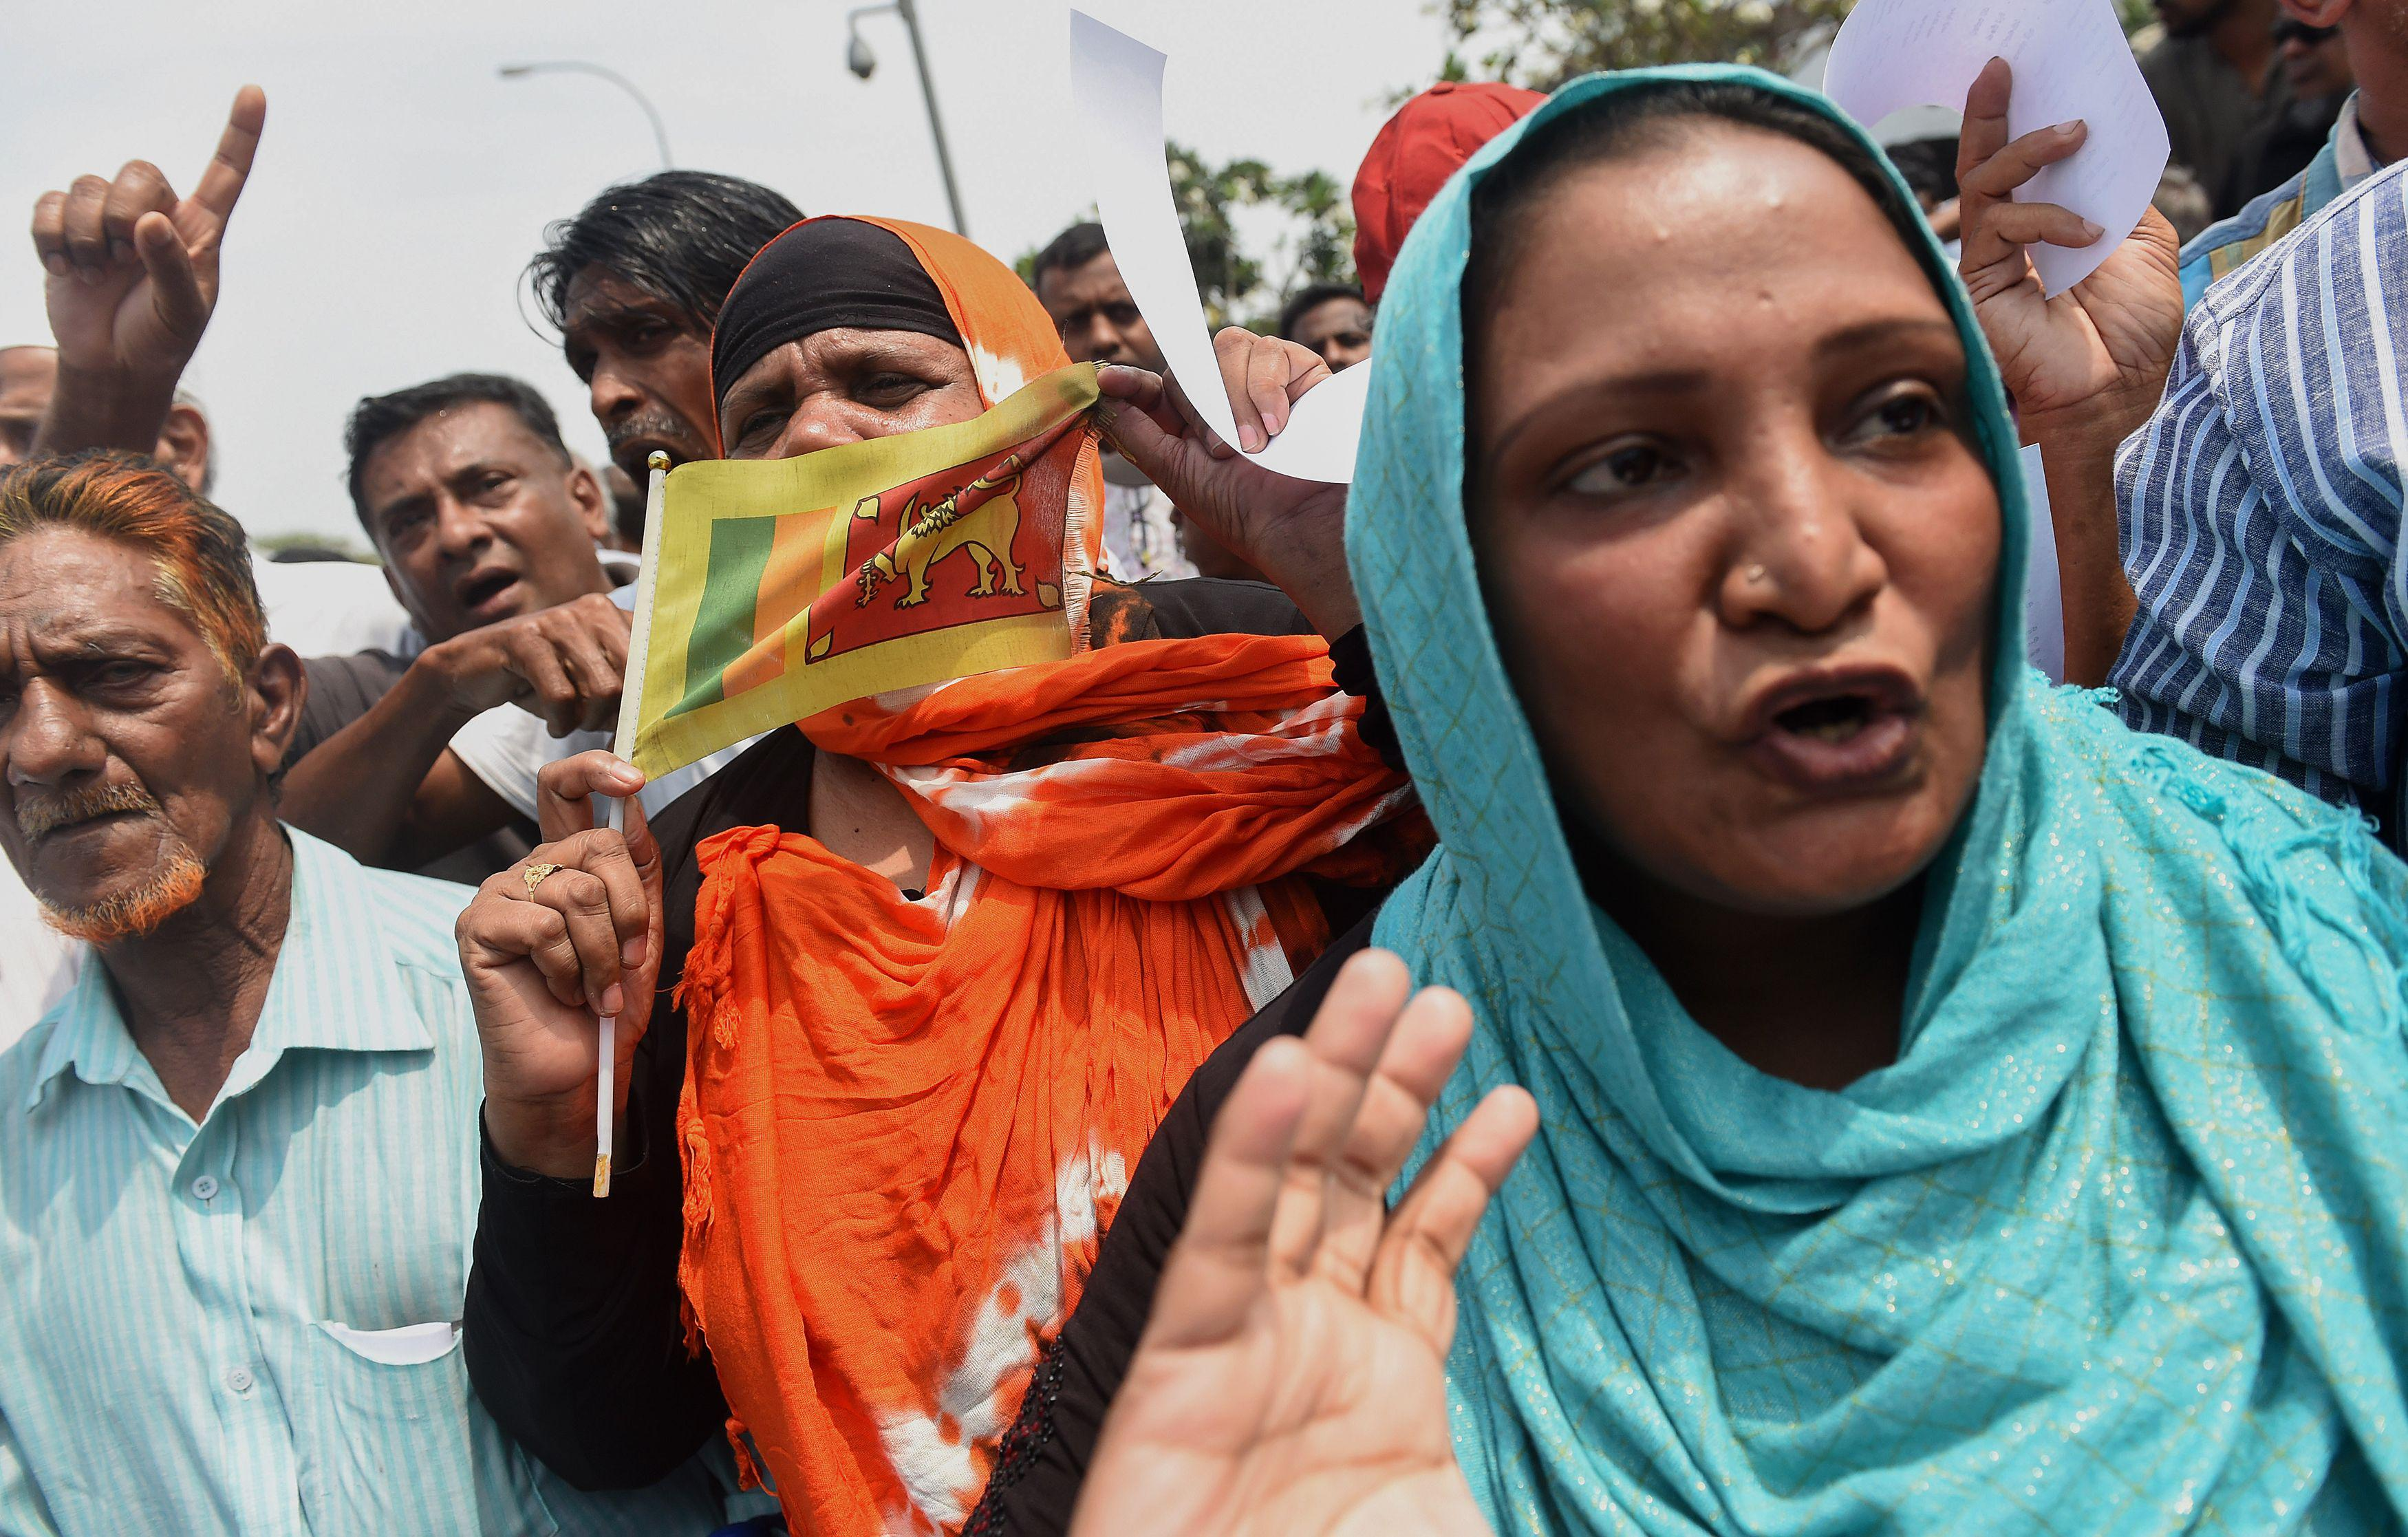 Members of the Purawasi Balaya group hold a rally calling for calm following violence in central Sri Lanka, in Colombo on March 8, 2018.A daytime curfew was relaxed on March 8 in the troubled Sri Lankan district of Kandy where three people were killed in anti-Muslim riots, but schools remained closed as beefed-up security forces patrolled the streets. More than 200 homes, businesses and vehicles were set ablaze during three days of violence sparked by the death of a man from the mainly Buddhist Sinhalese majority at the hands of a Muslim mob last week. / AFP PHOTO / ISHARA S. KODIKARA